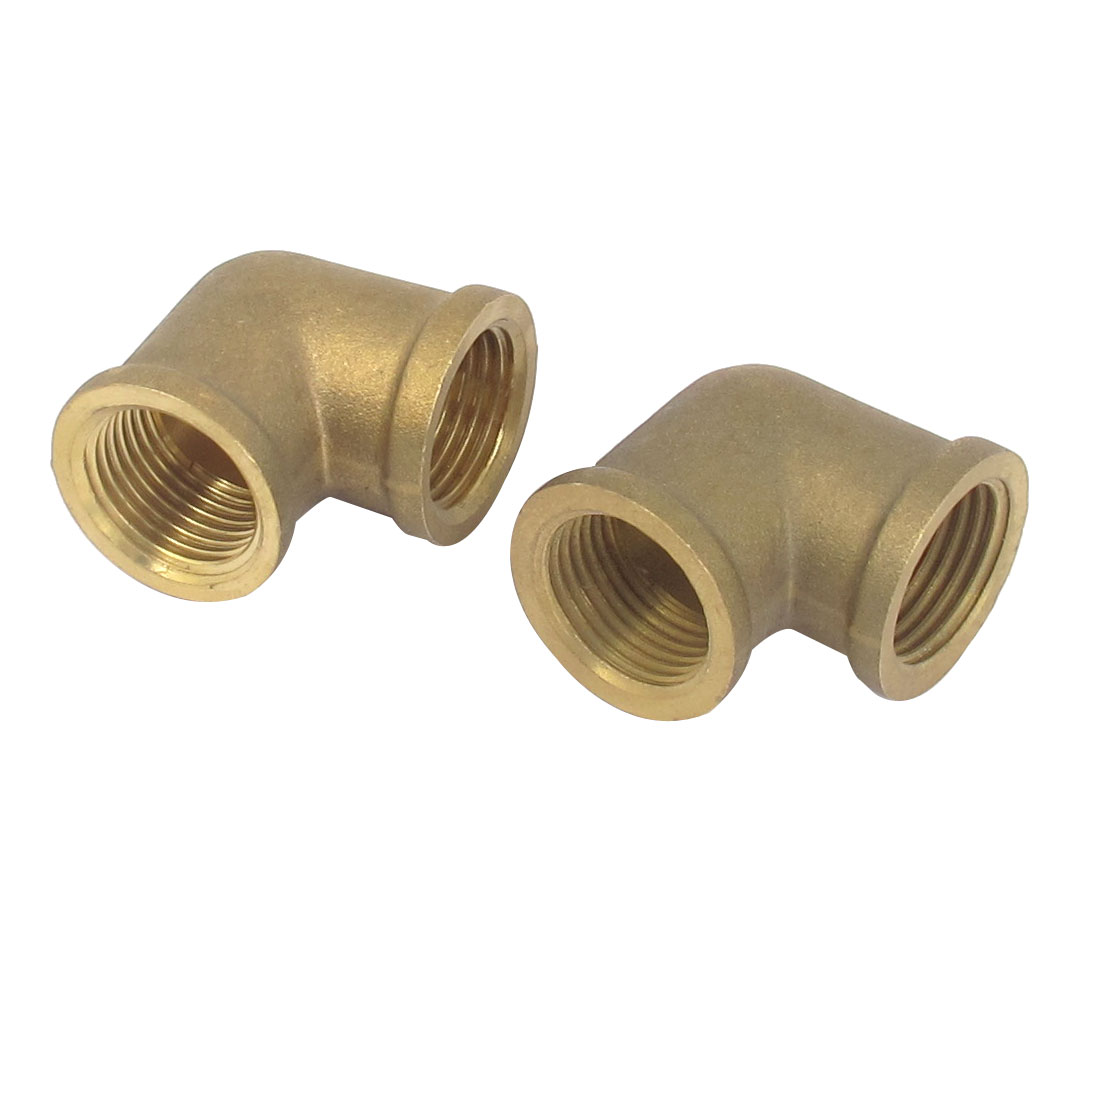 1/2BSP Female to Female Metal L Shape Elbow Hose Pipe Tube Fitting Connector 2pcs